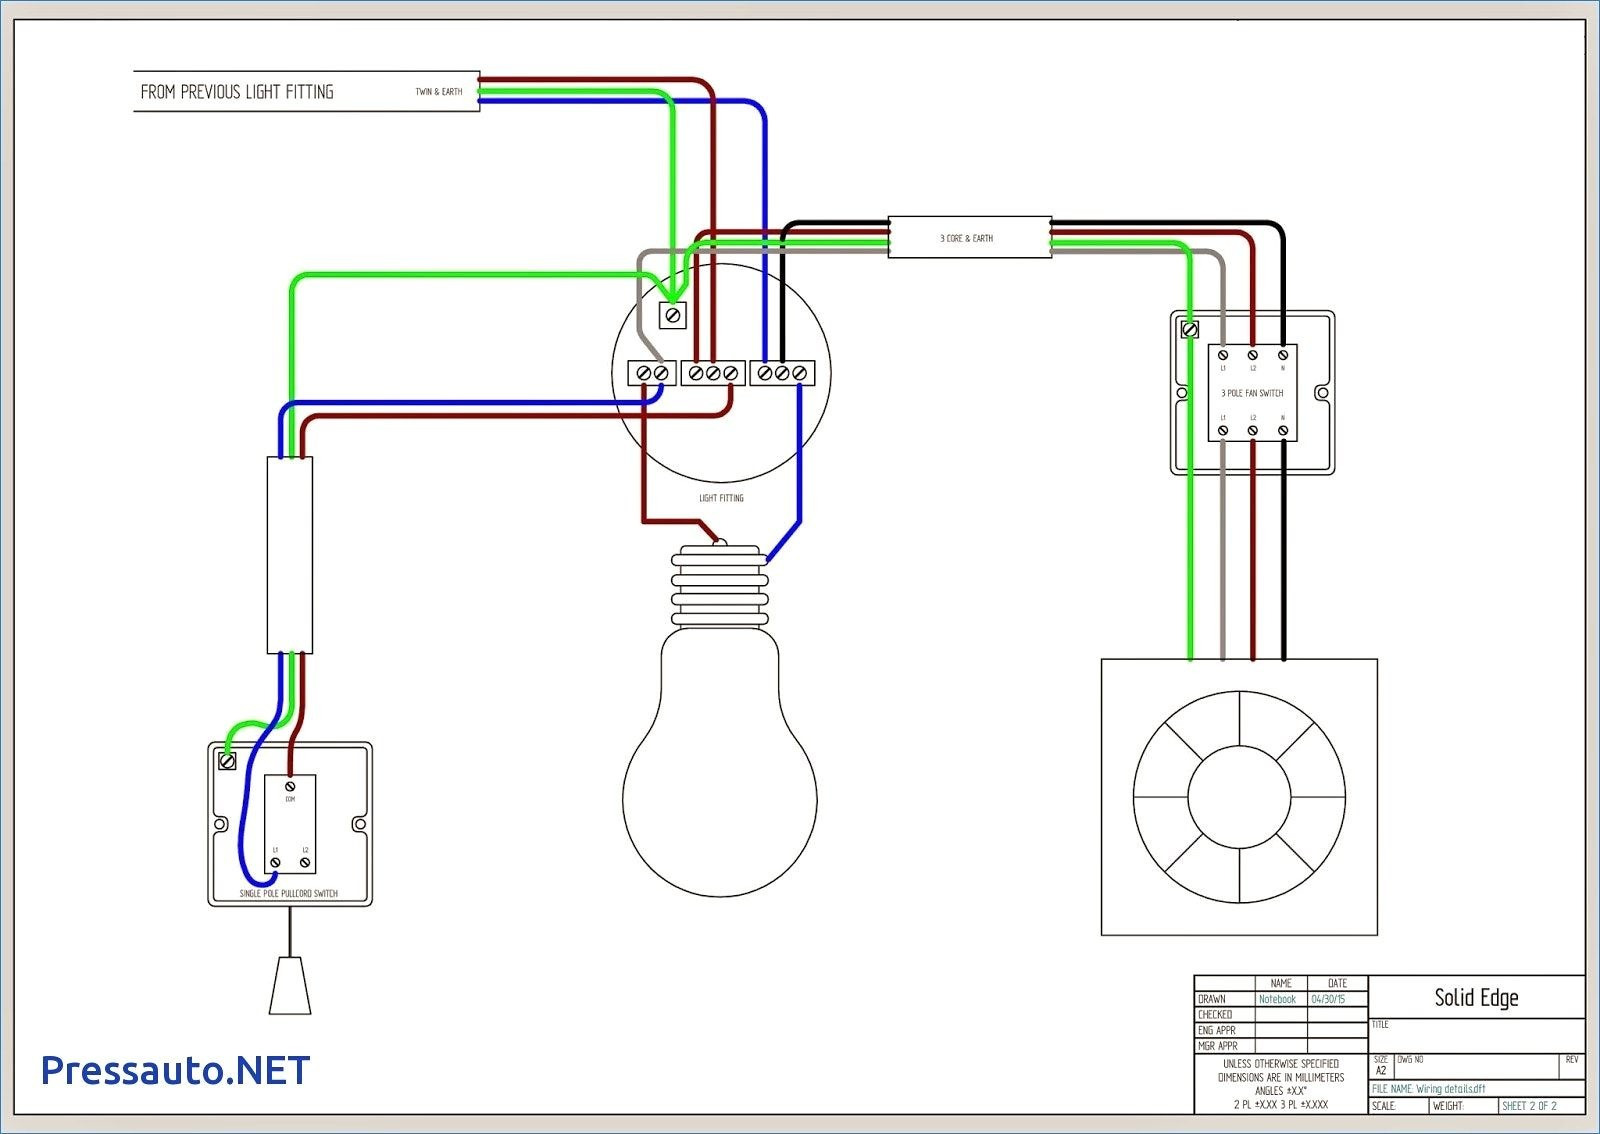 stinger battery isolator wiring diagram Download-Stinger Battery Isolator Wiringram Marine Switch Boat Rv Wiring Diagram Dual Schematic 1600 8-i